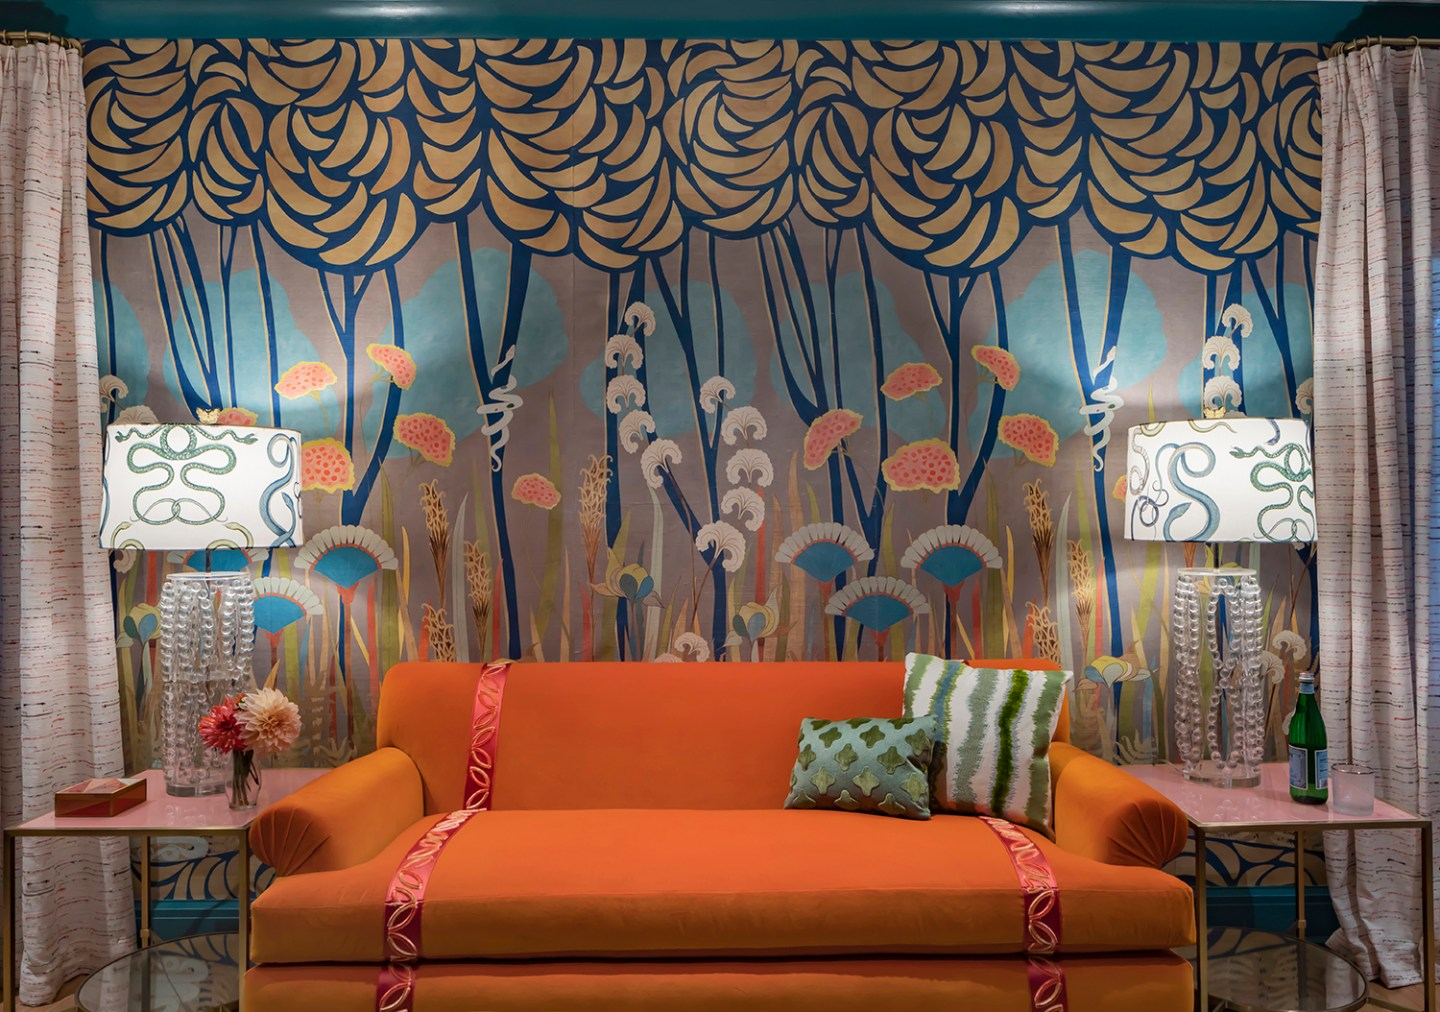 Courtney-McLeod-RMLID-JL-Showhouse_23 Tips for Adding Color and Pattern to a Roomfrom a Louisiana Native